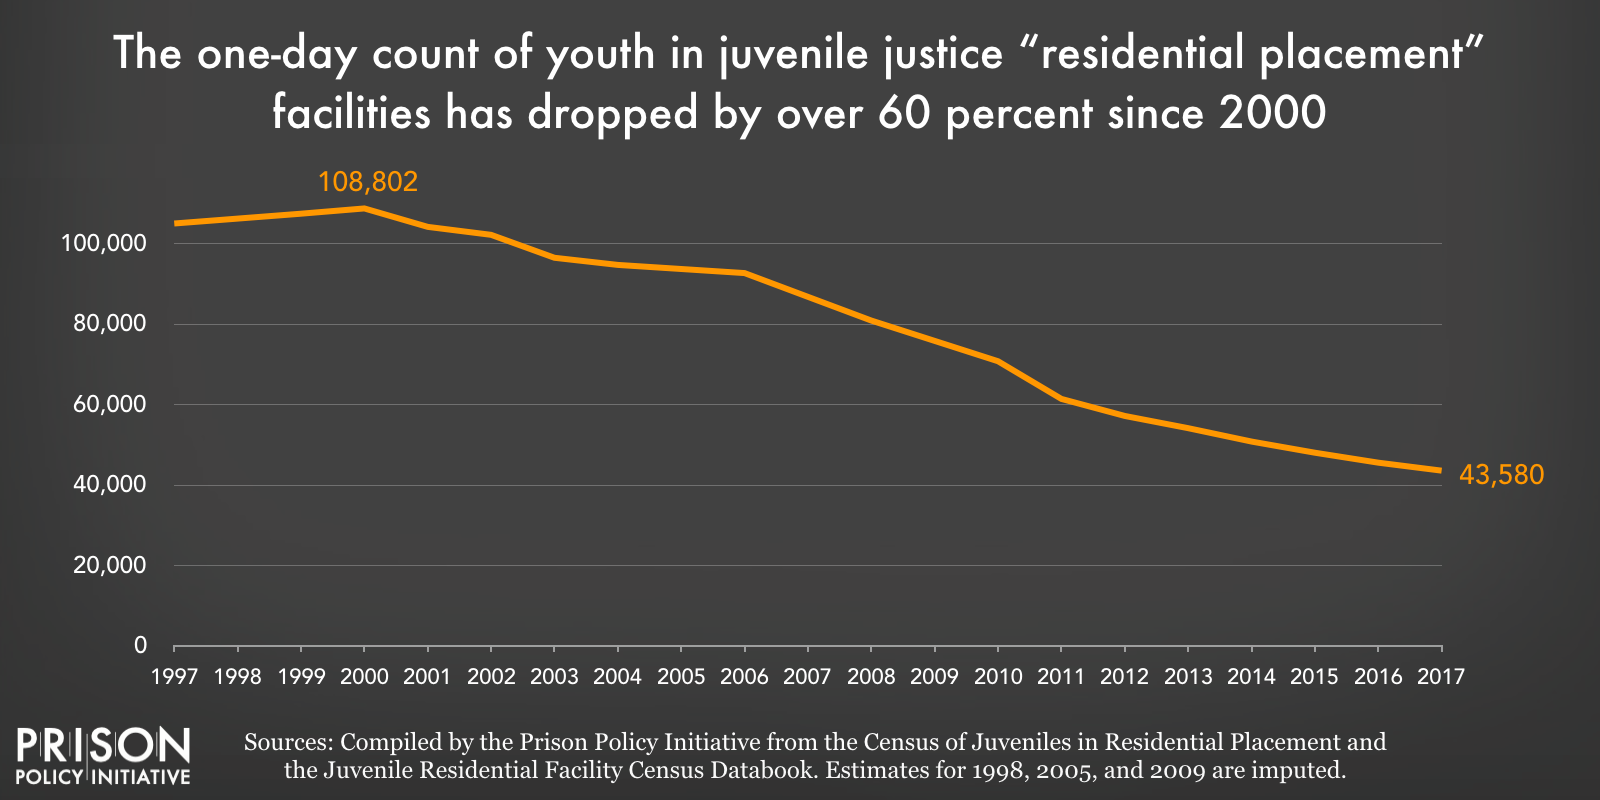 Chart showing that the one-day count of youth in juvenile justice residential placement facilities (not adult facilities) has dropped by over 60 percent since 2000.